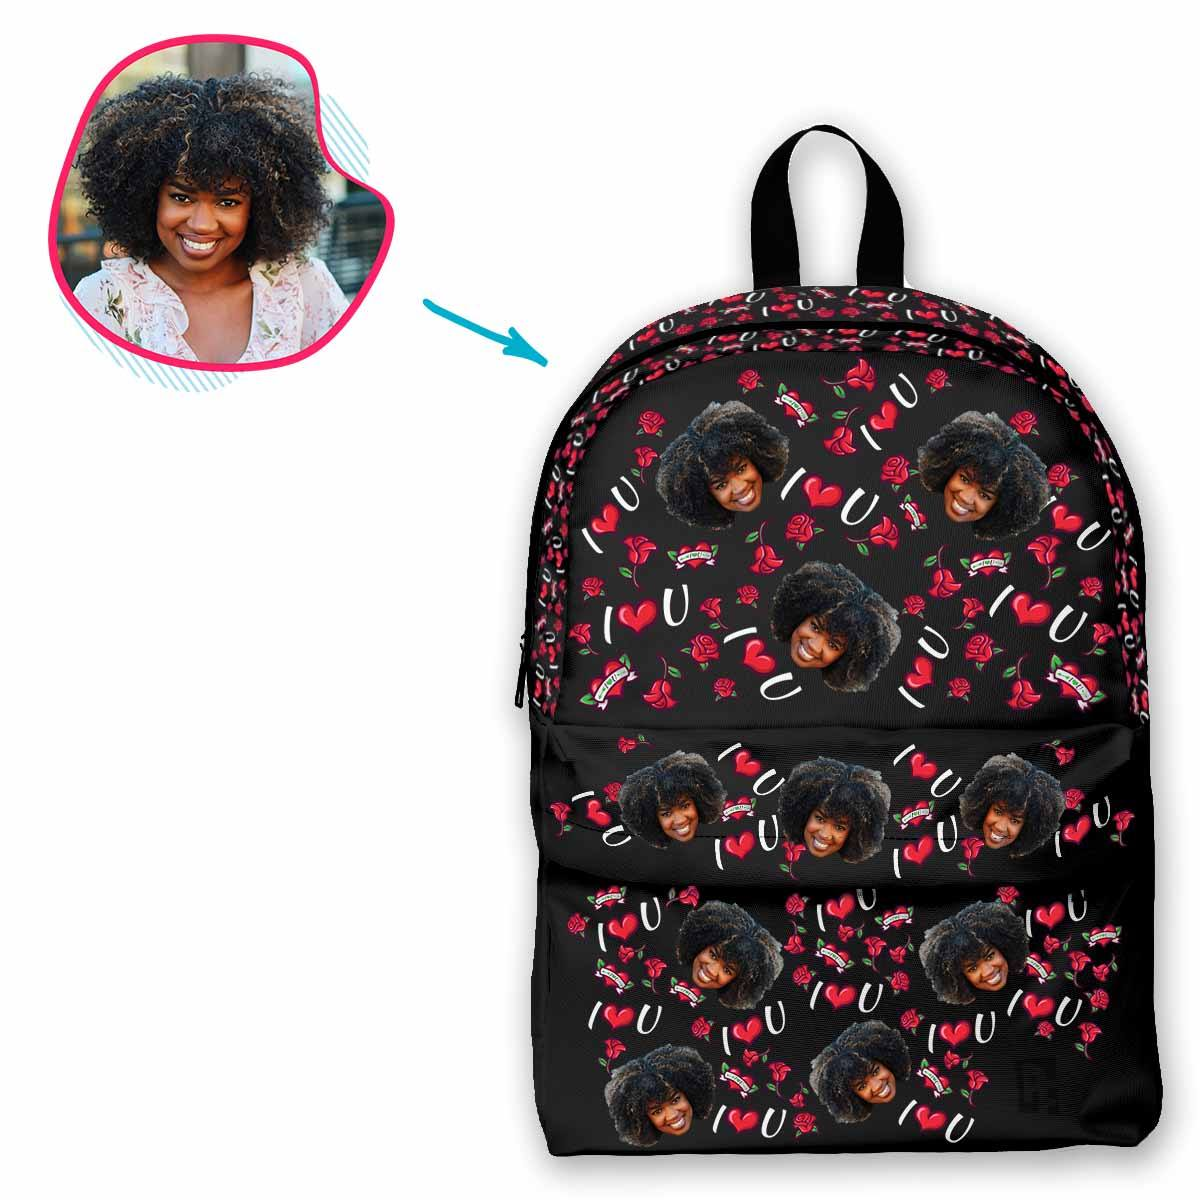 dark Valentines classic backpack personalized with photo of face printed on it